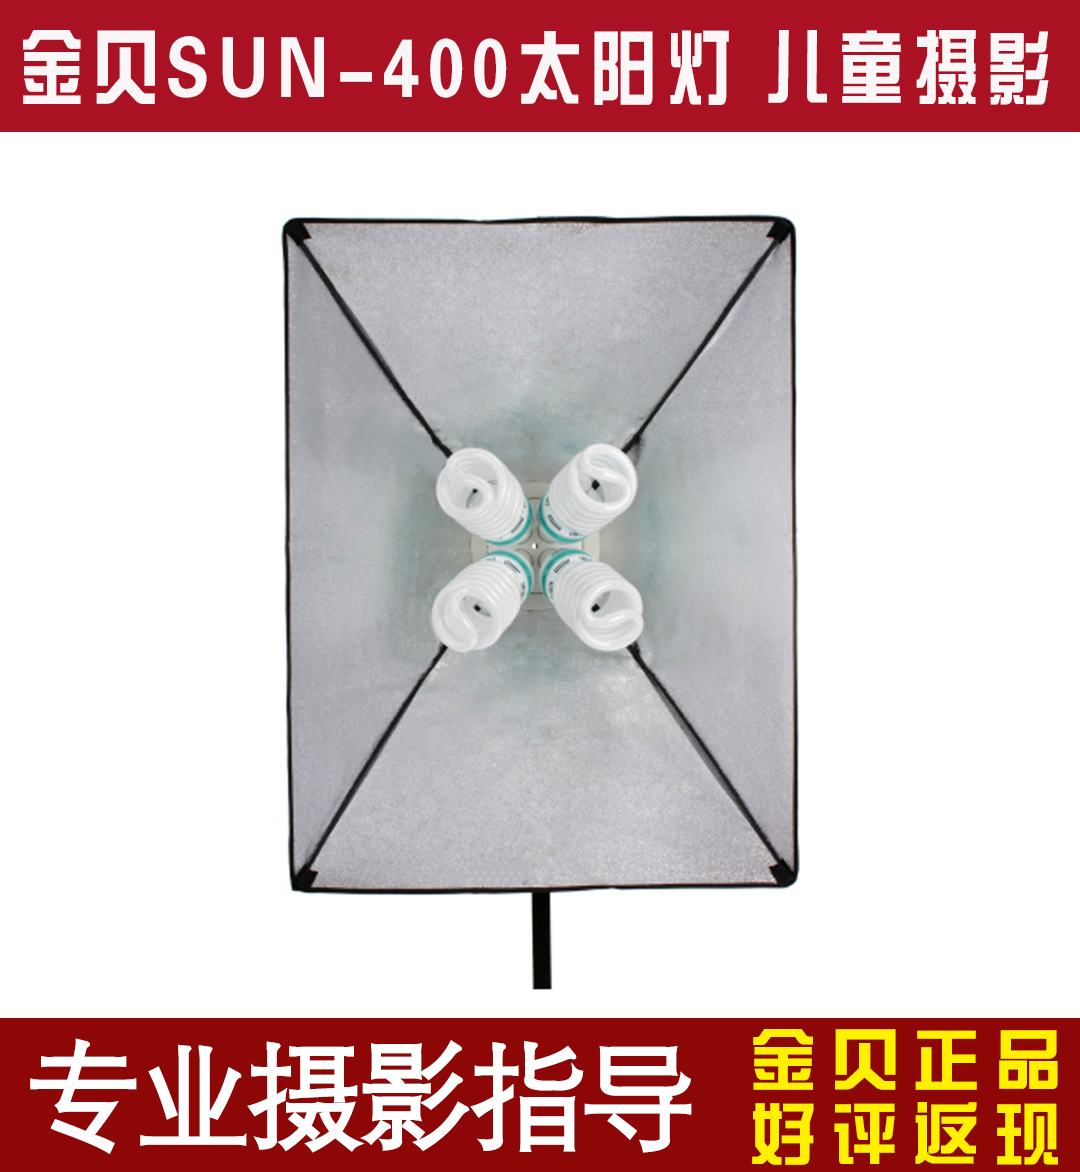 Jinbei sun-400 sustained light sun lamp children's photography quadruple light softbox kit